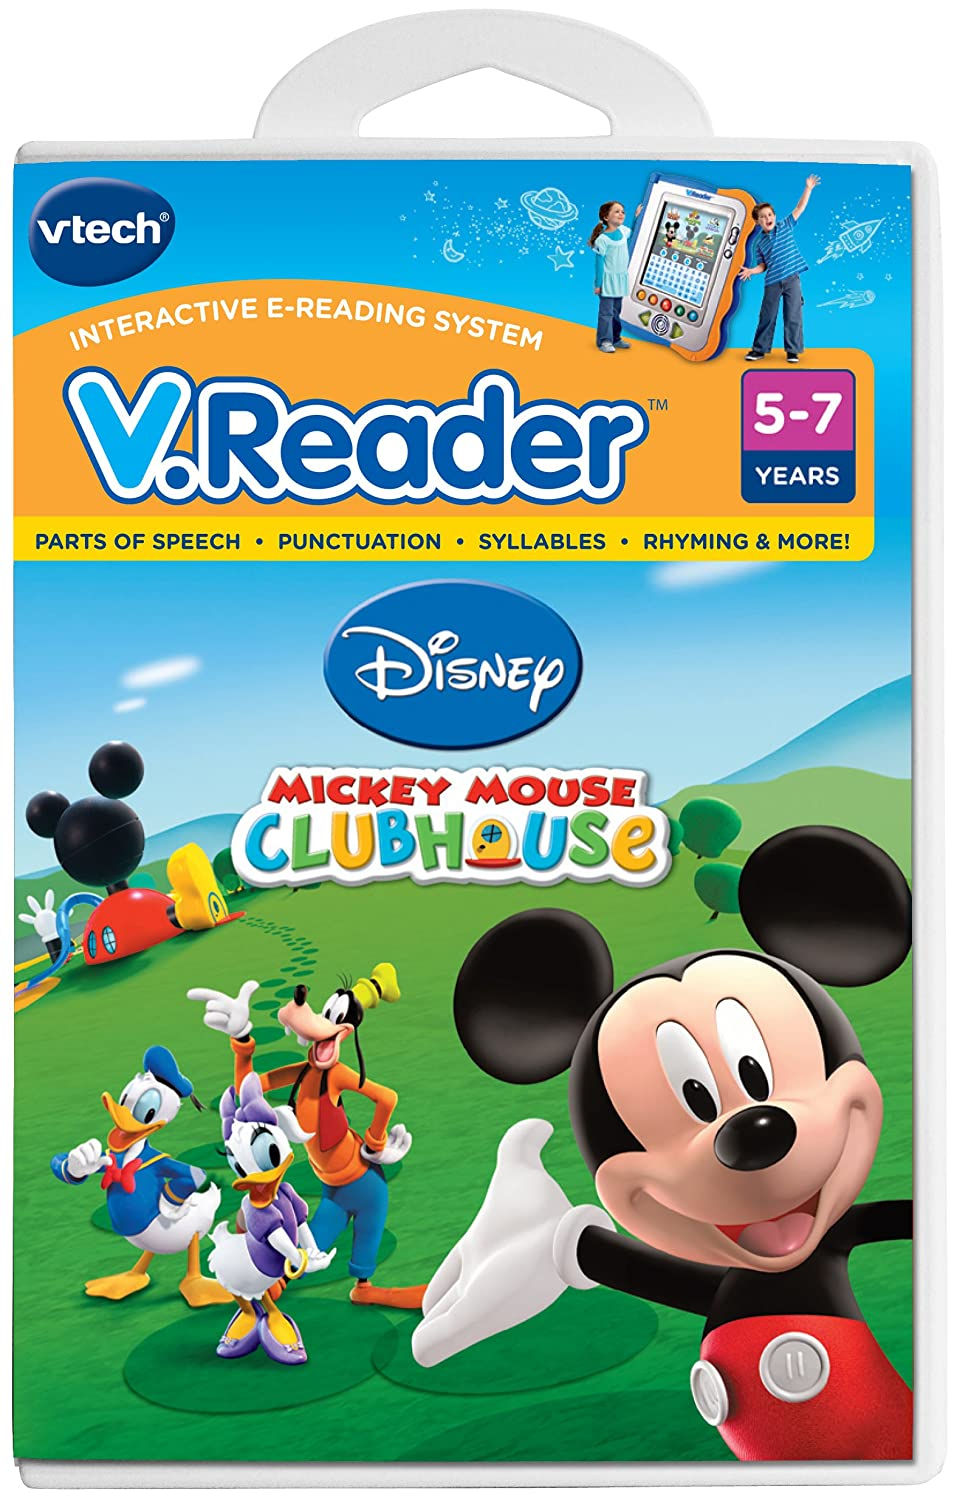 Vtech - V.Reader Software - Mickey Mouse Clubhouse V Tech 80-281000